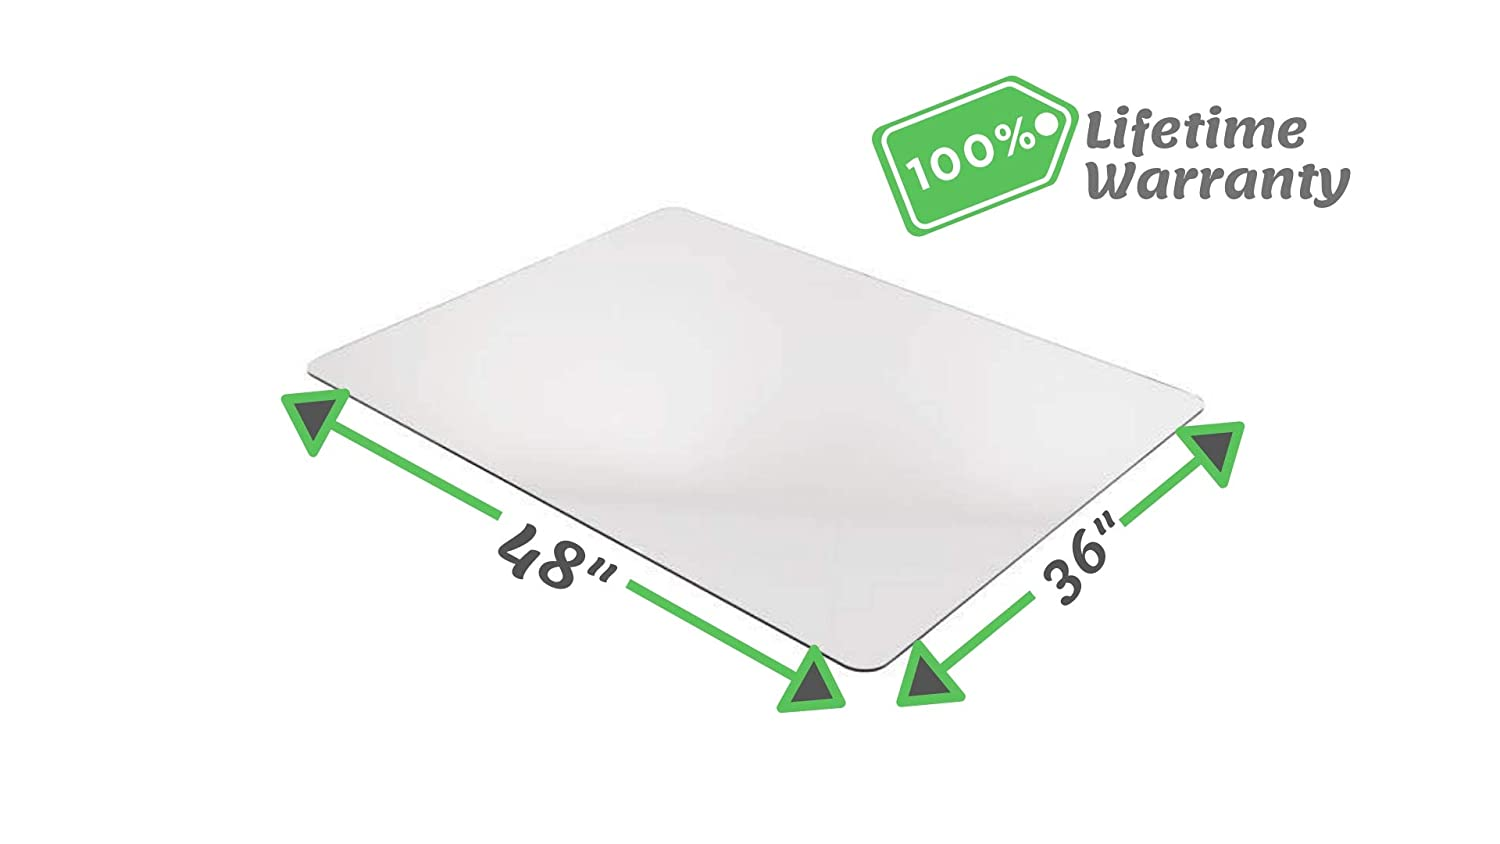 Matricks Office Chair Mat for Hard Floor Multipurpose Floor Protector Clear Polycarbonate Desk Chair Mat Perfect for Hardwood Floor Guaranteed Long-Lasting Protection 36 x 48